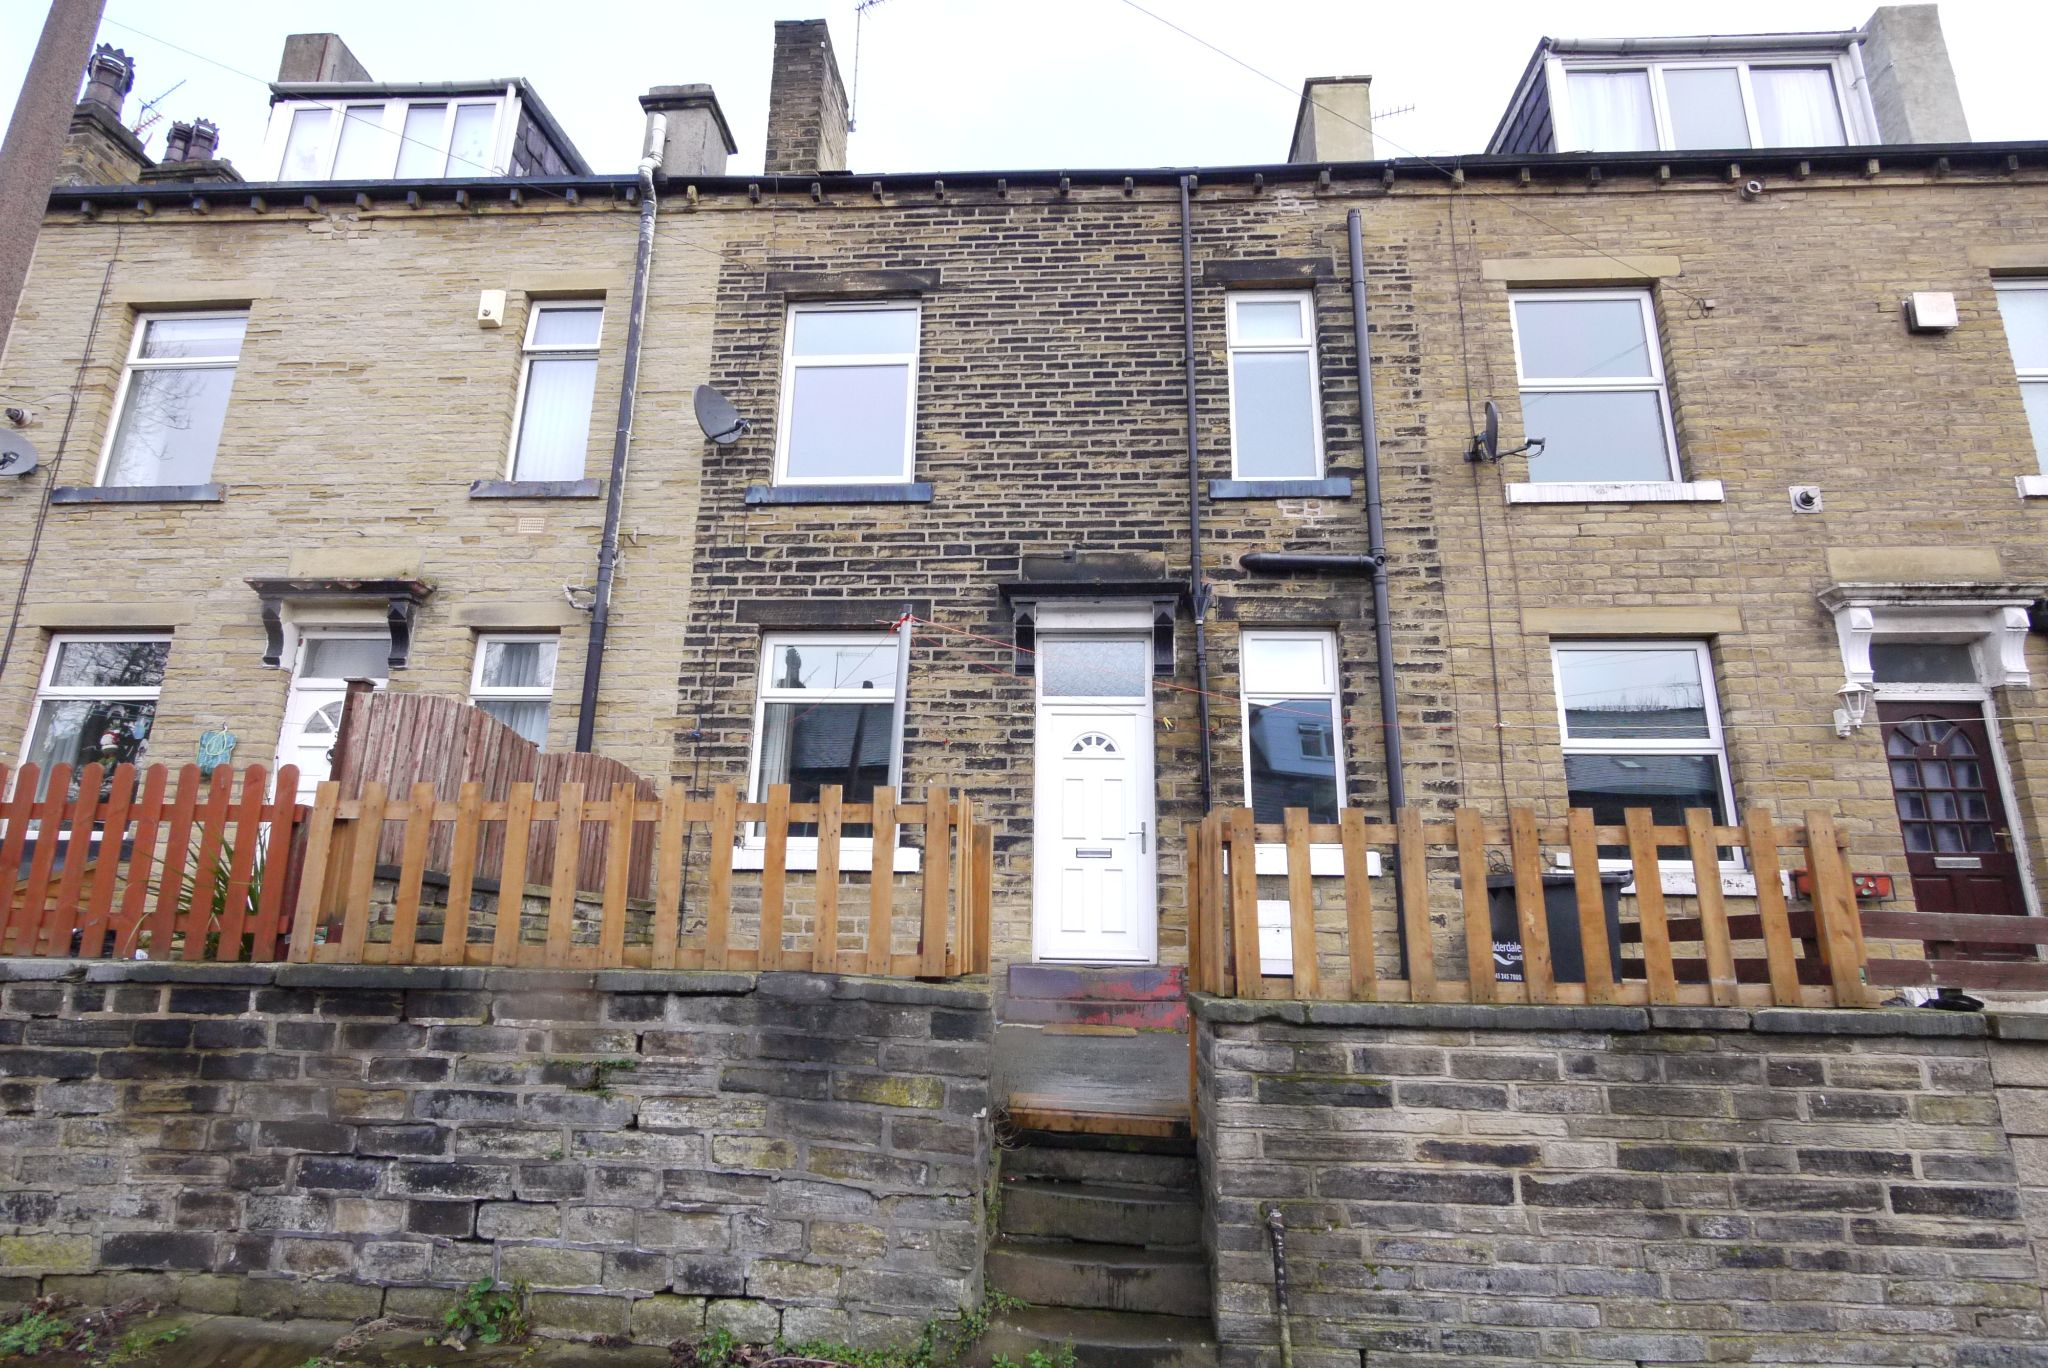 2 bedroom mid terraced house SSTC in Halifax - Photograph 1.